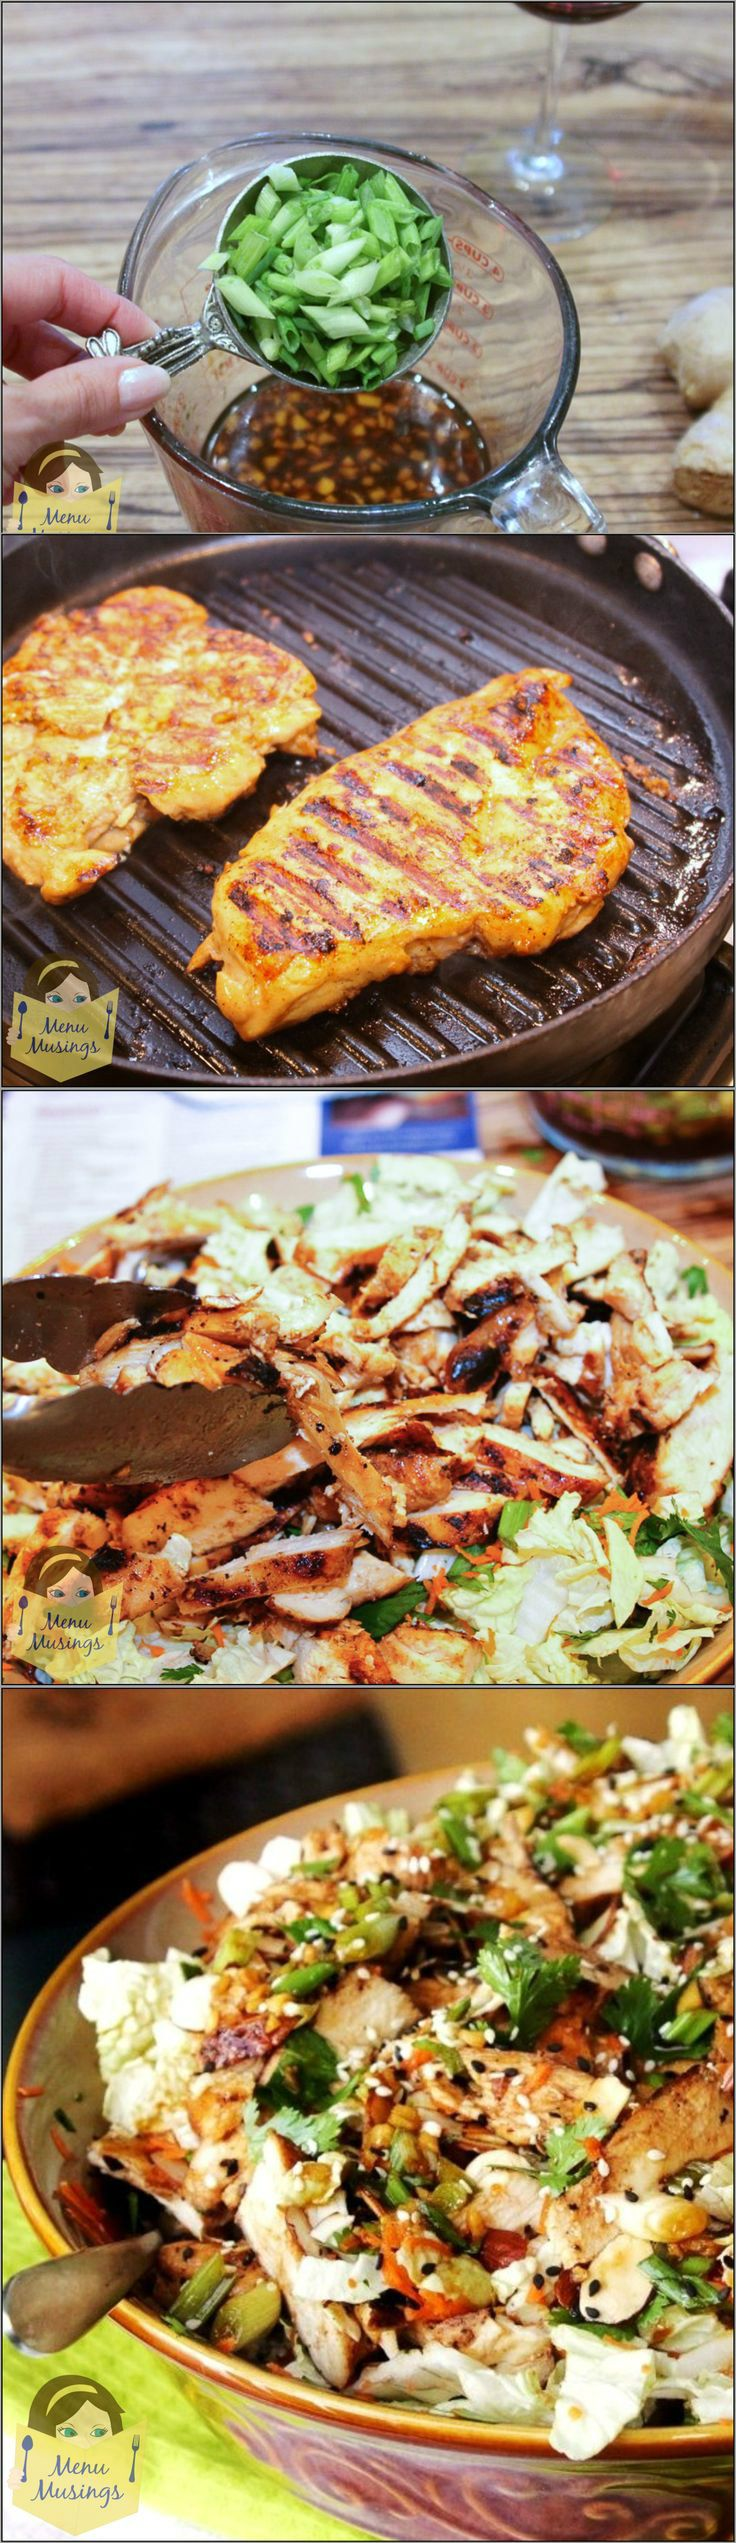 A step-by-step pictures Grilled Ginger-Sesame Chicken Salad recipe  The salad was easy to make, FULL of HUGE flavors, and very little fat. #pioneersettler